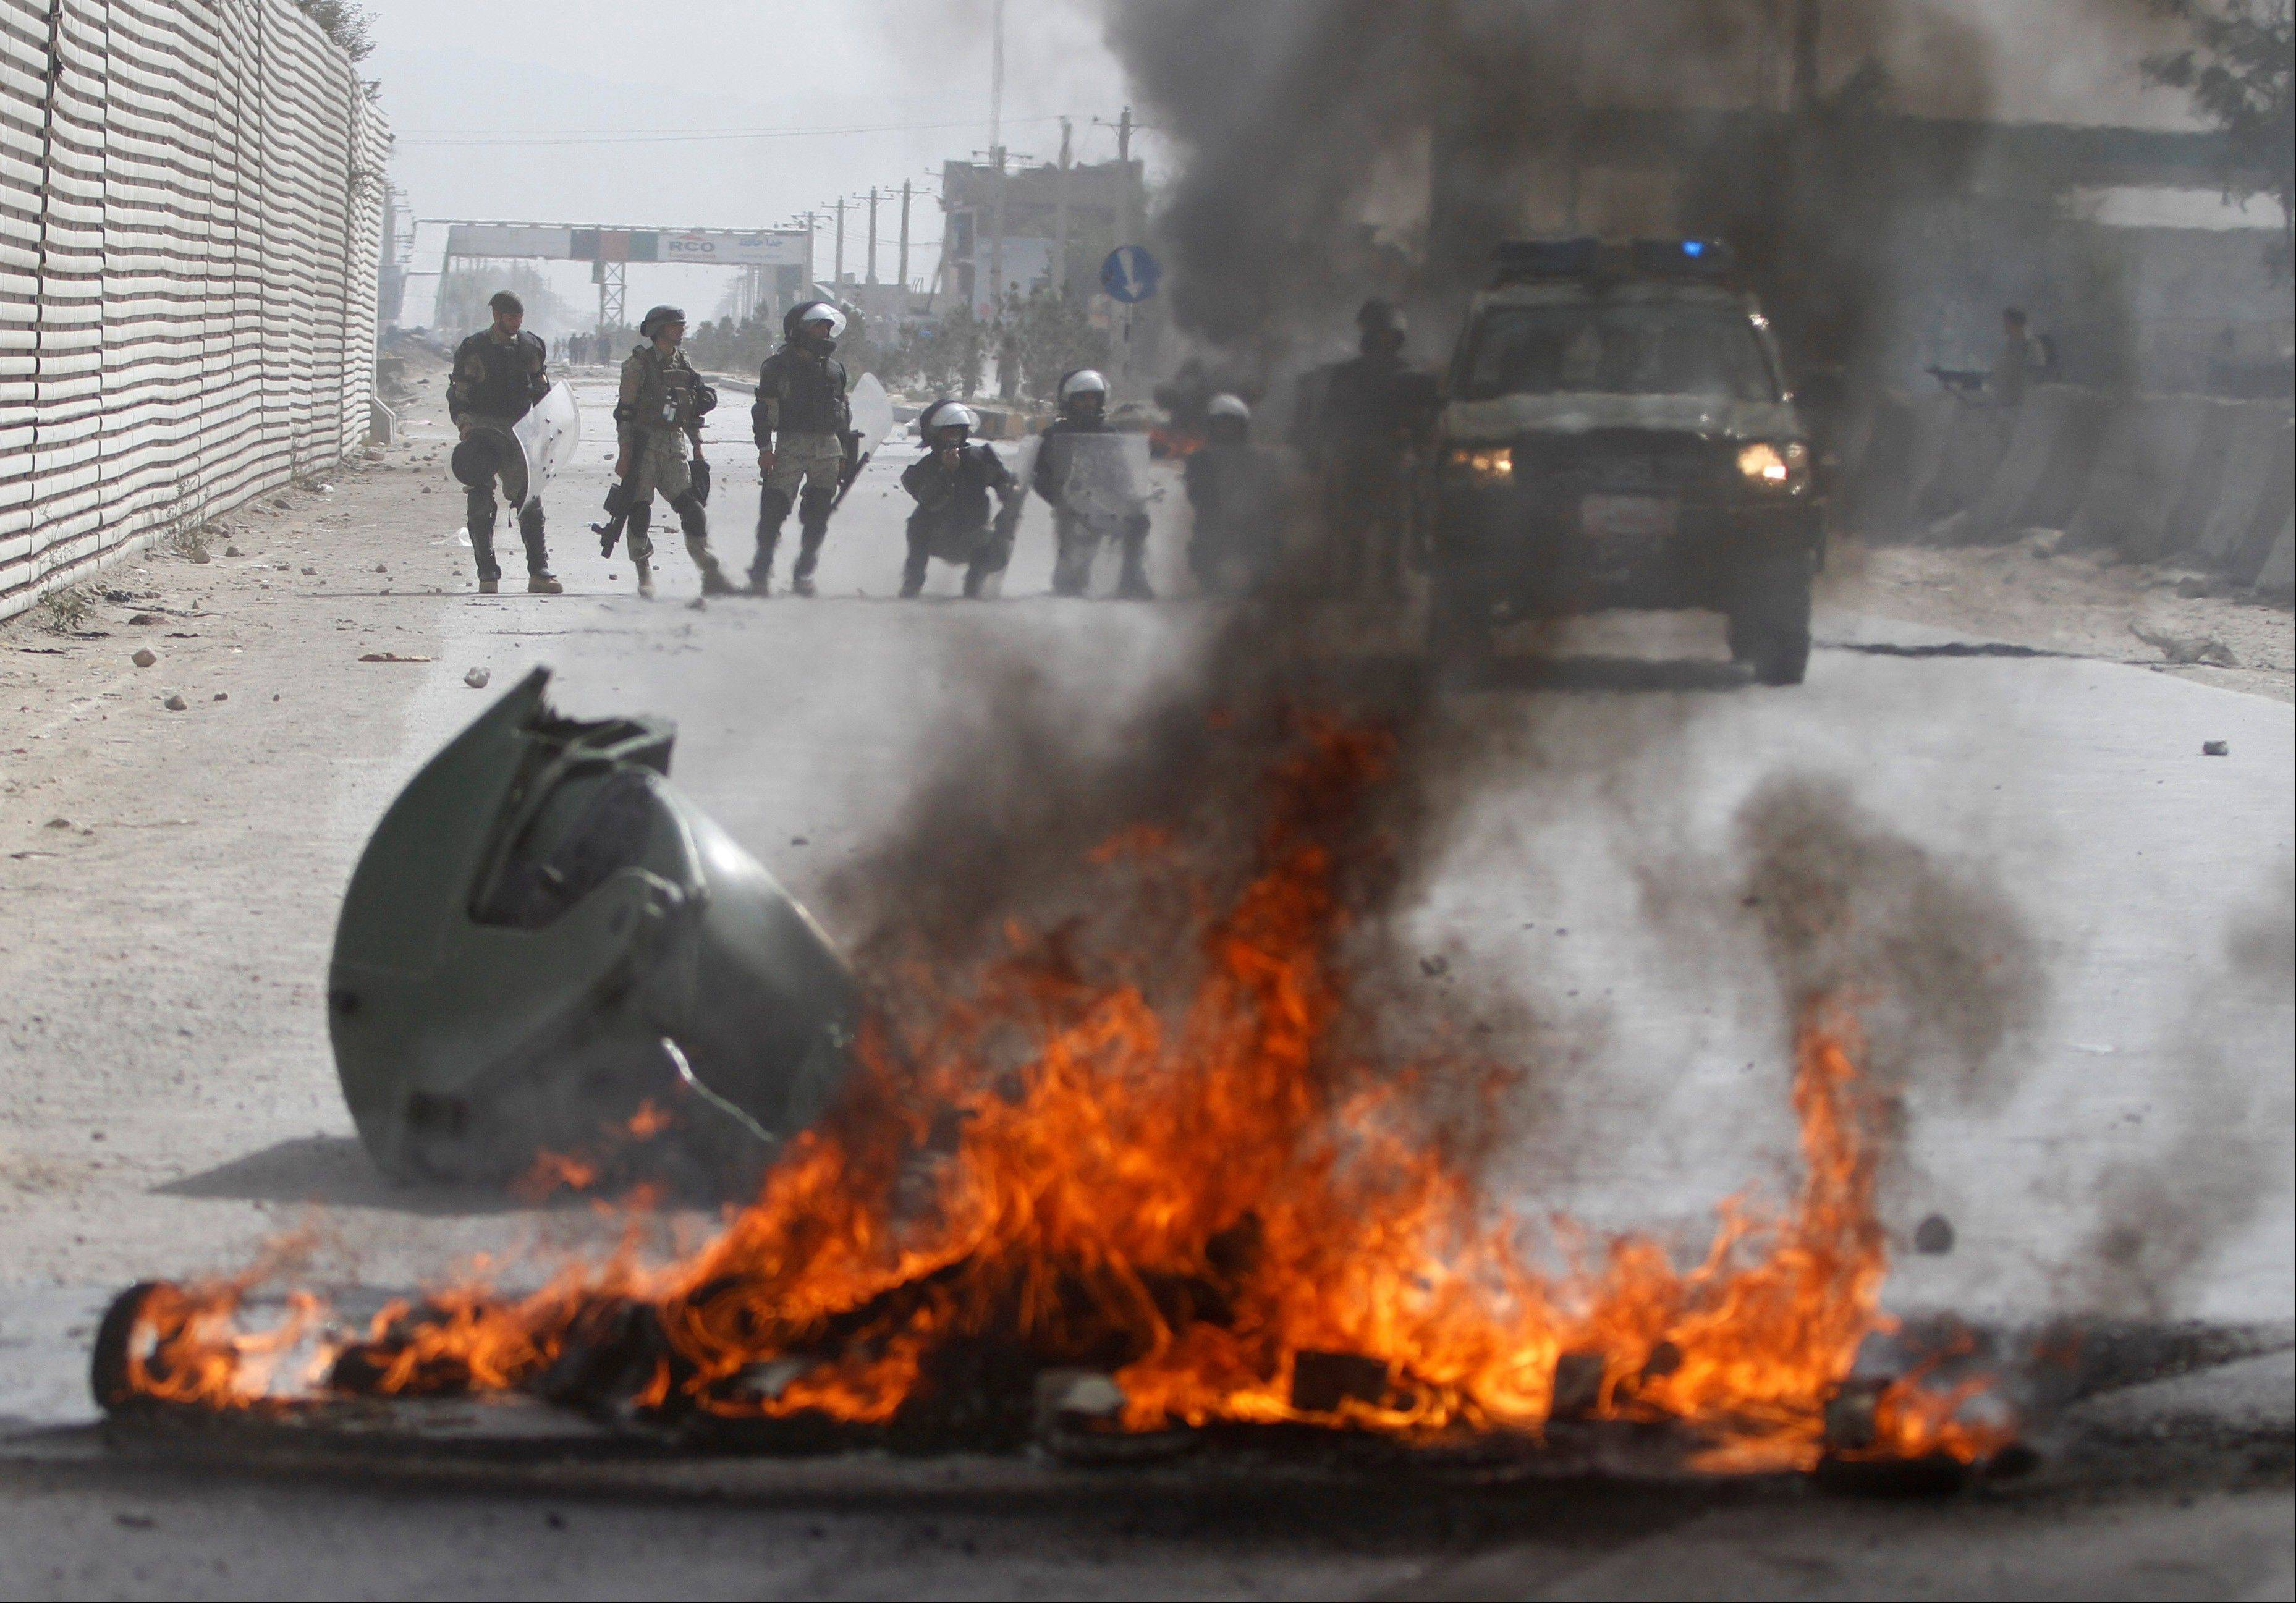 Afghan police stand by burning tires during a protest, in Kabul, Afghanistan, Monday.